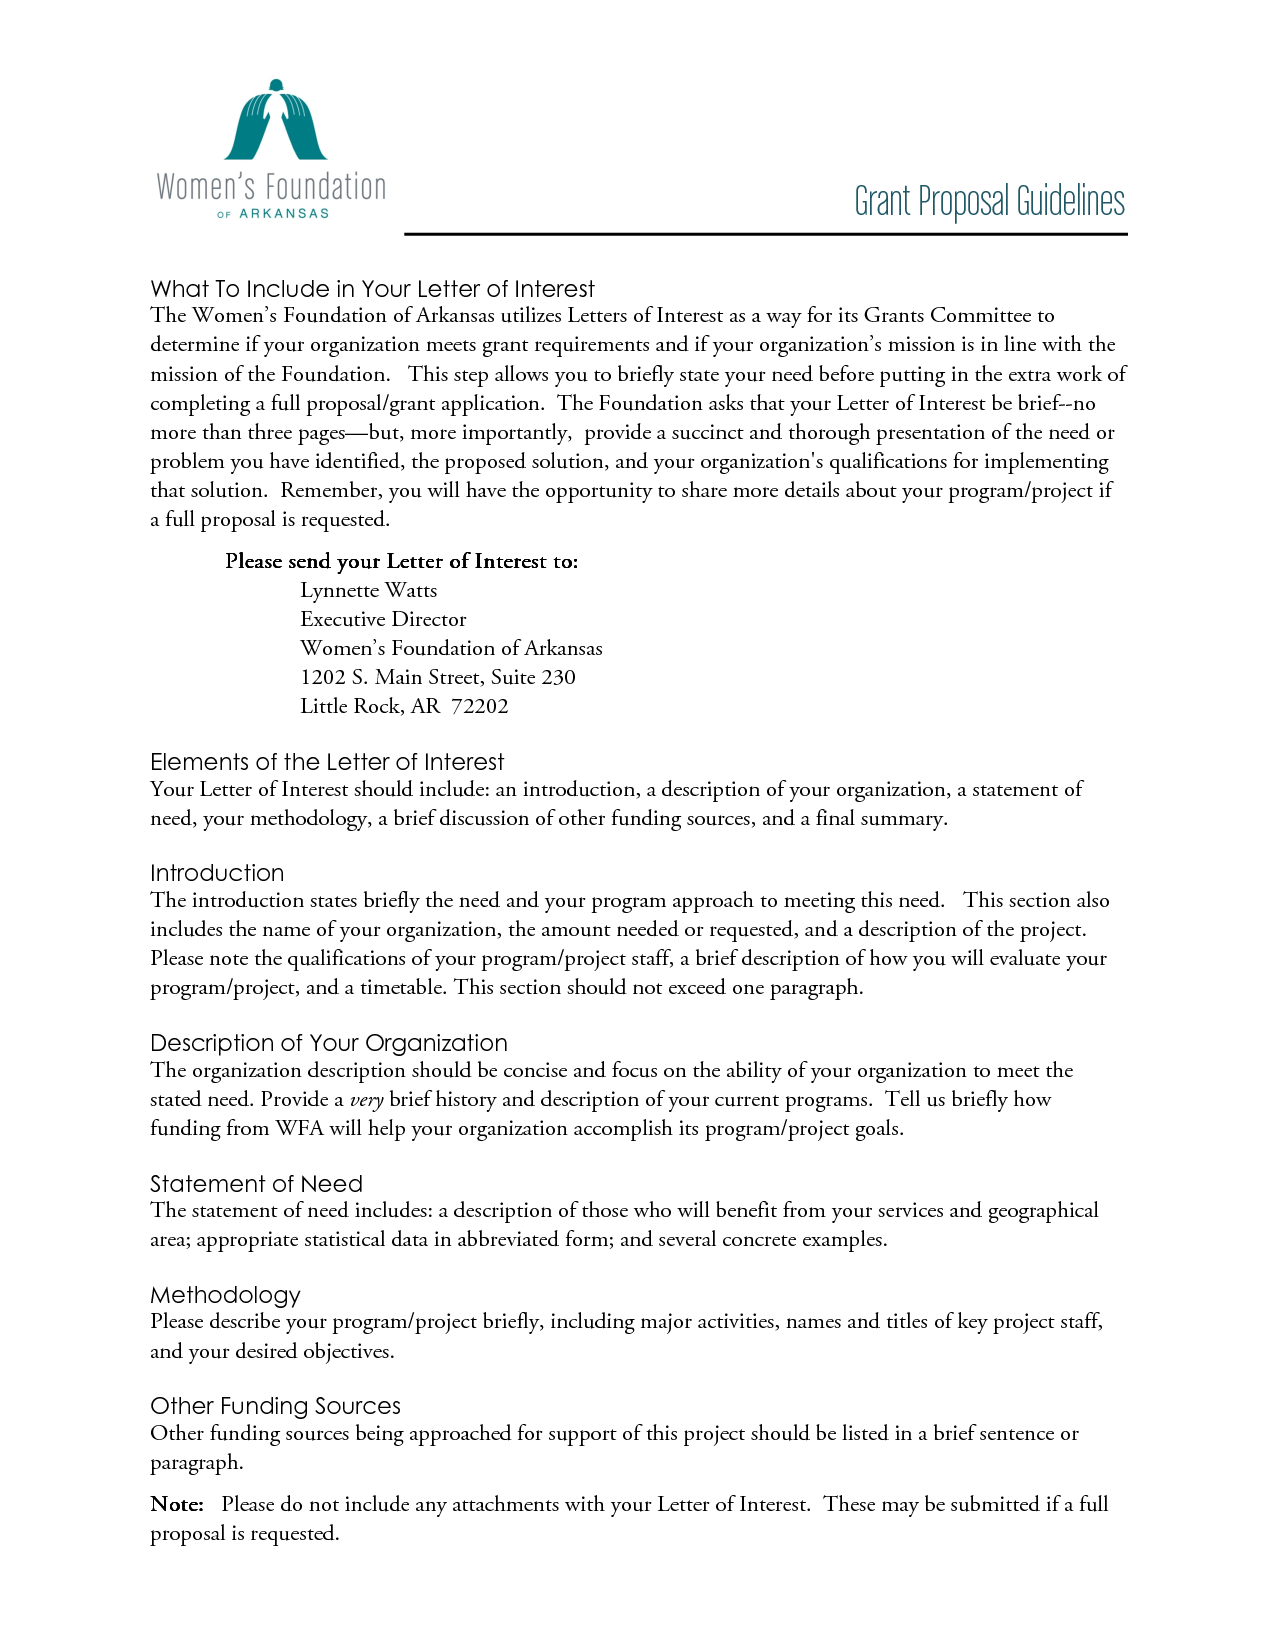 Free Letter Of Interest Templates Letter Of Interest Grant